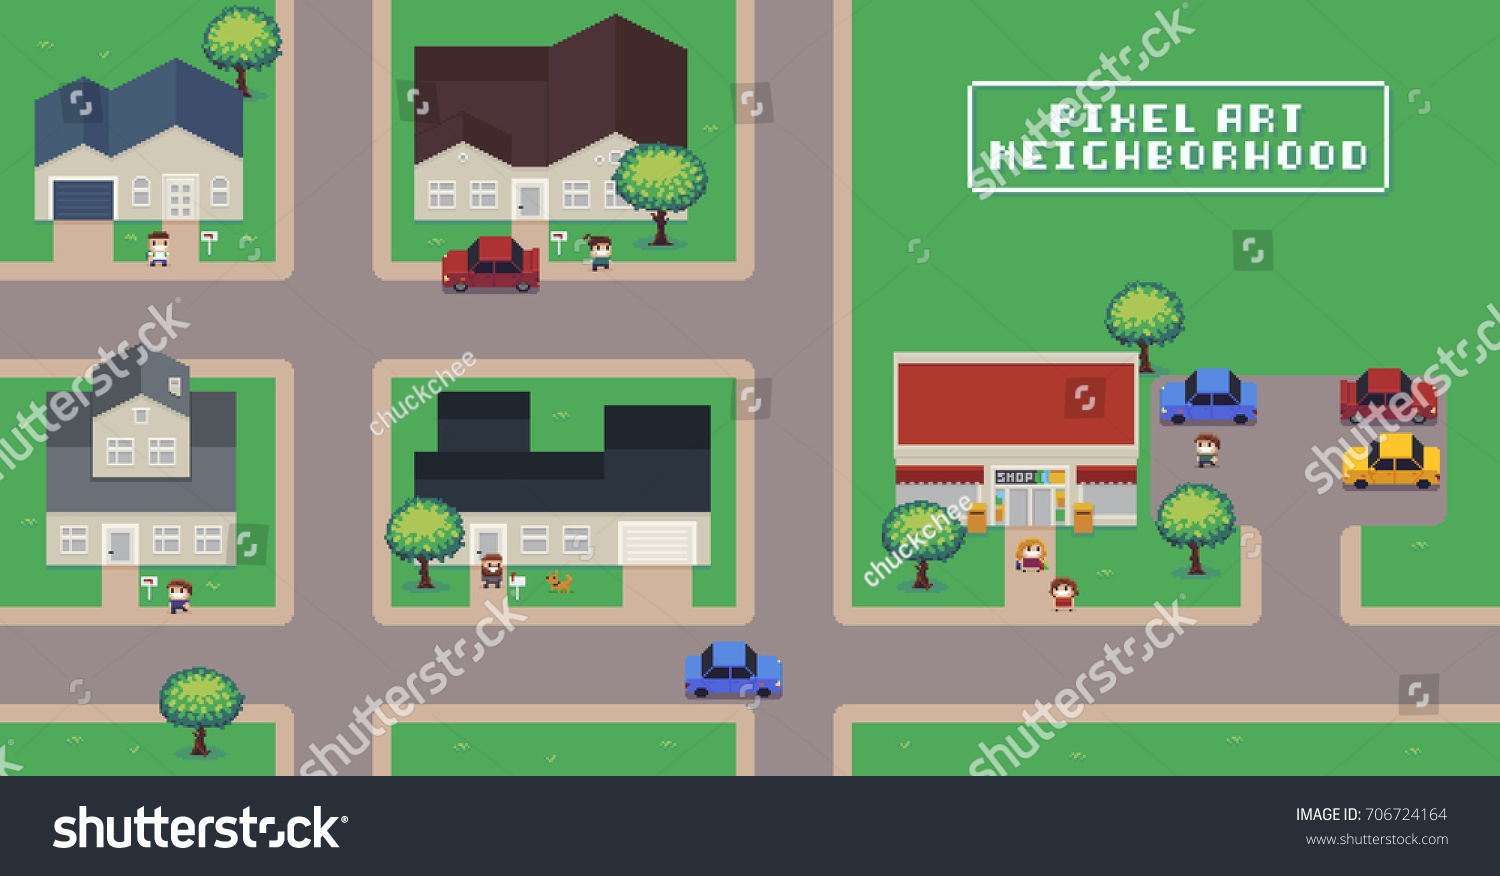 Pixel art neighborhood map houses shop stock vector House map drawing images